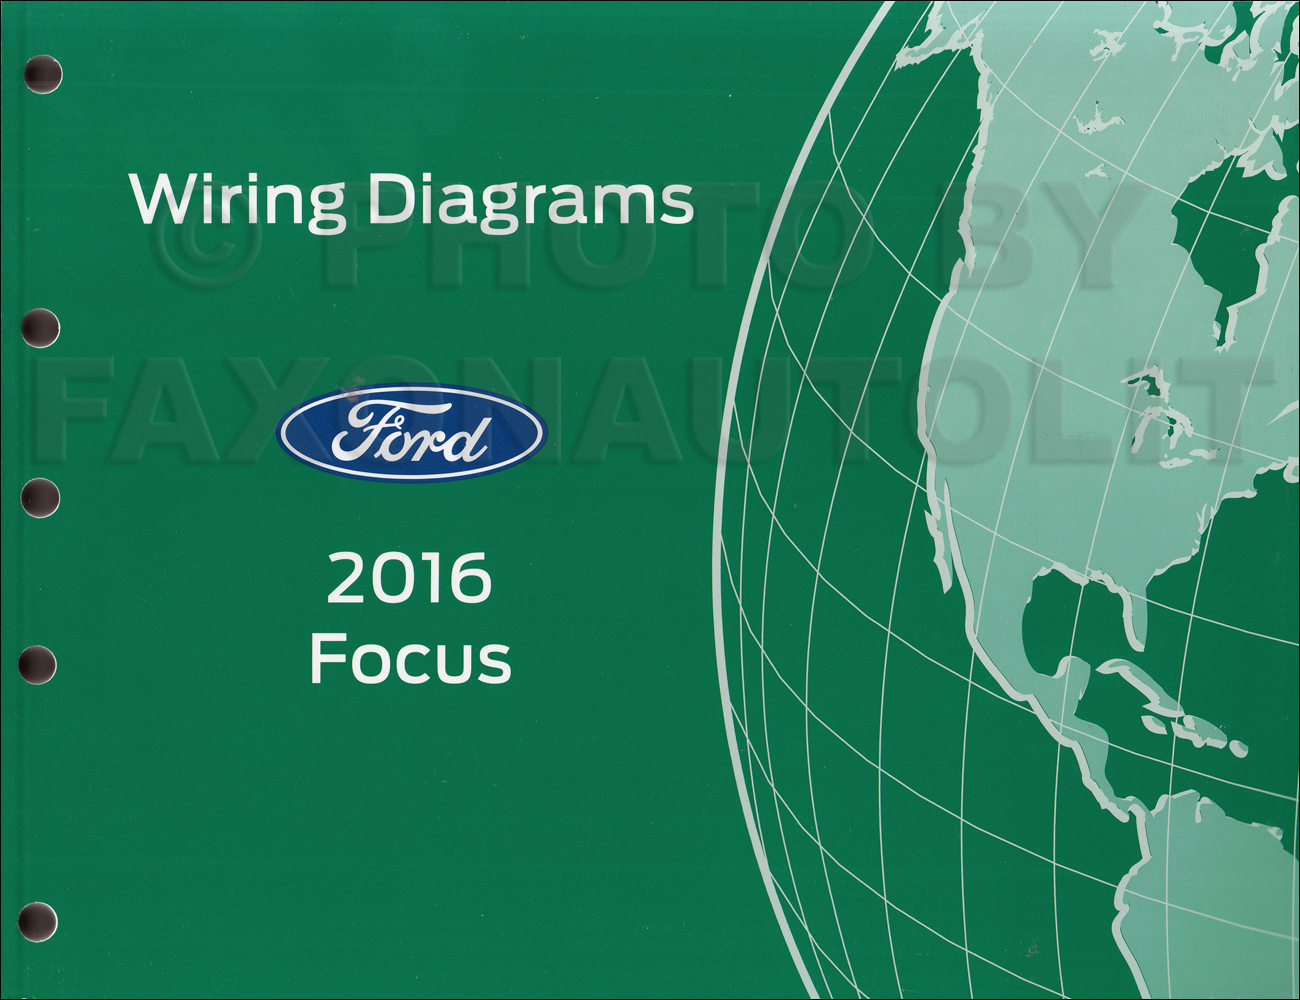 2016 Ford Focus Wiring Diagram Manual Original Diagrams